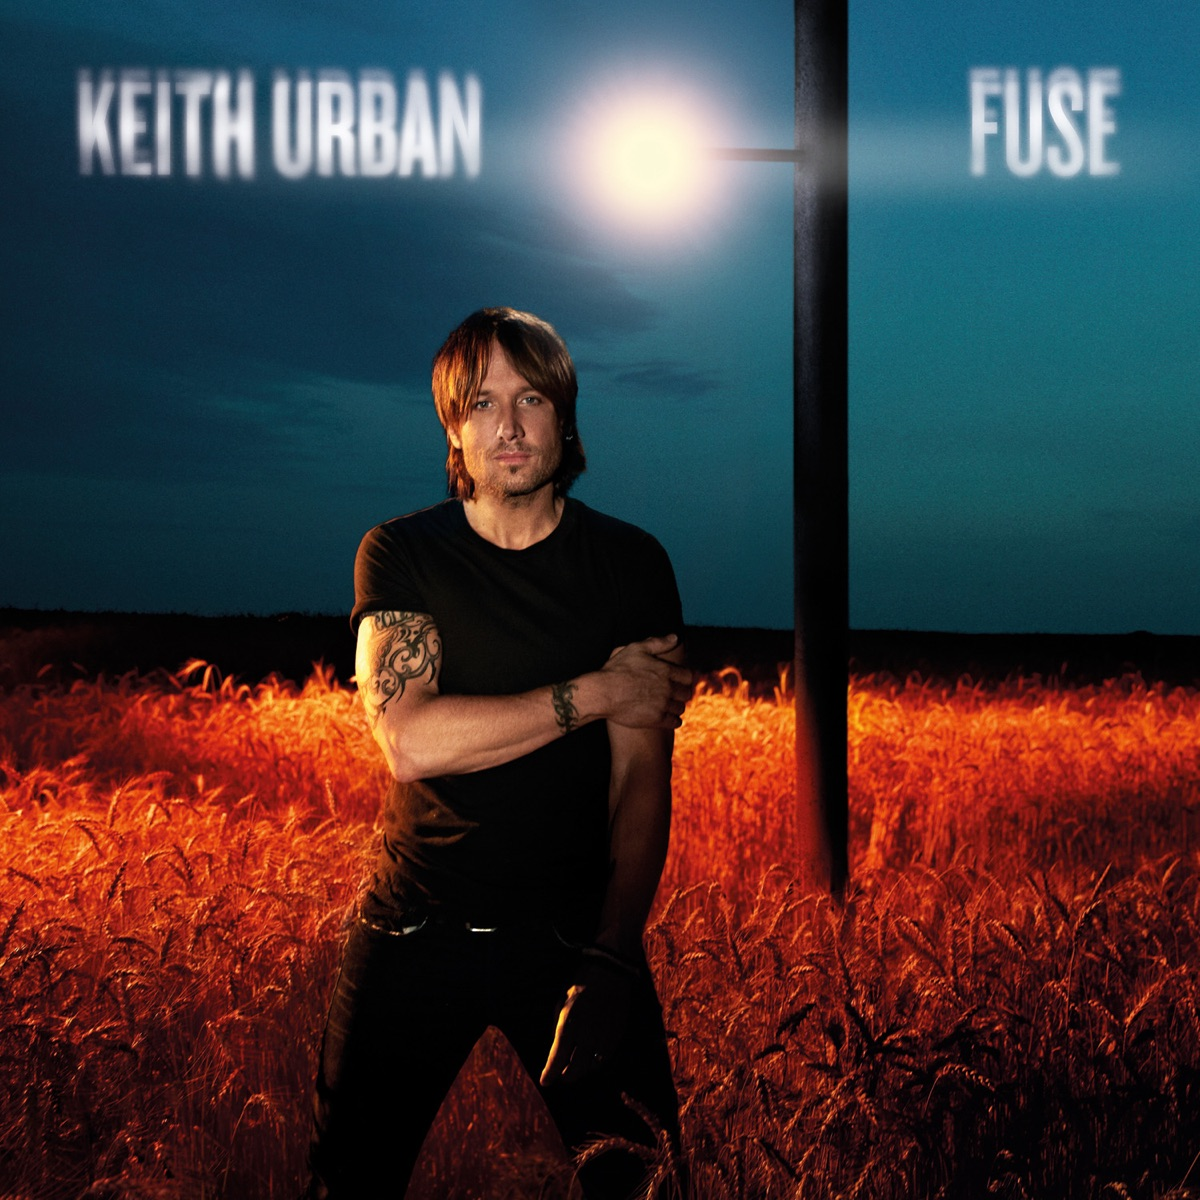 Fuse Deluxe Version Keith Urban CD cover